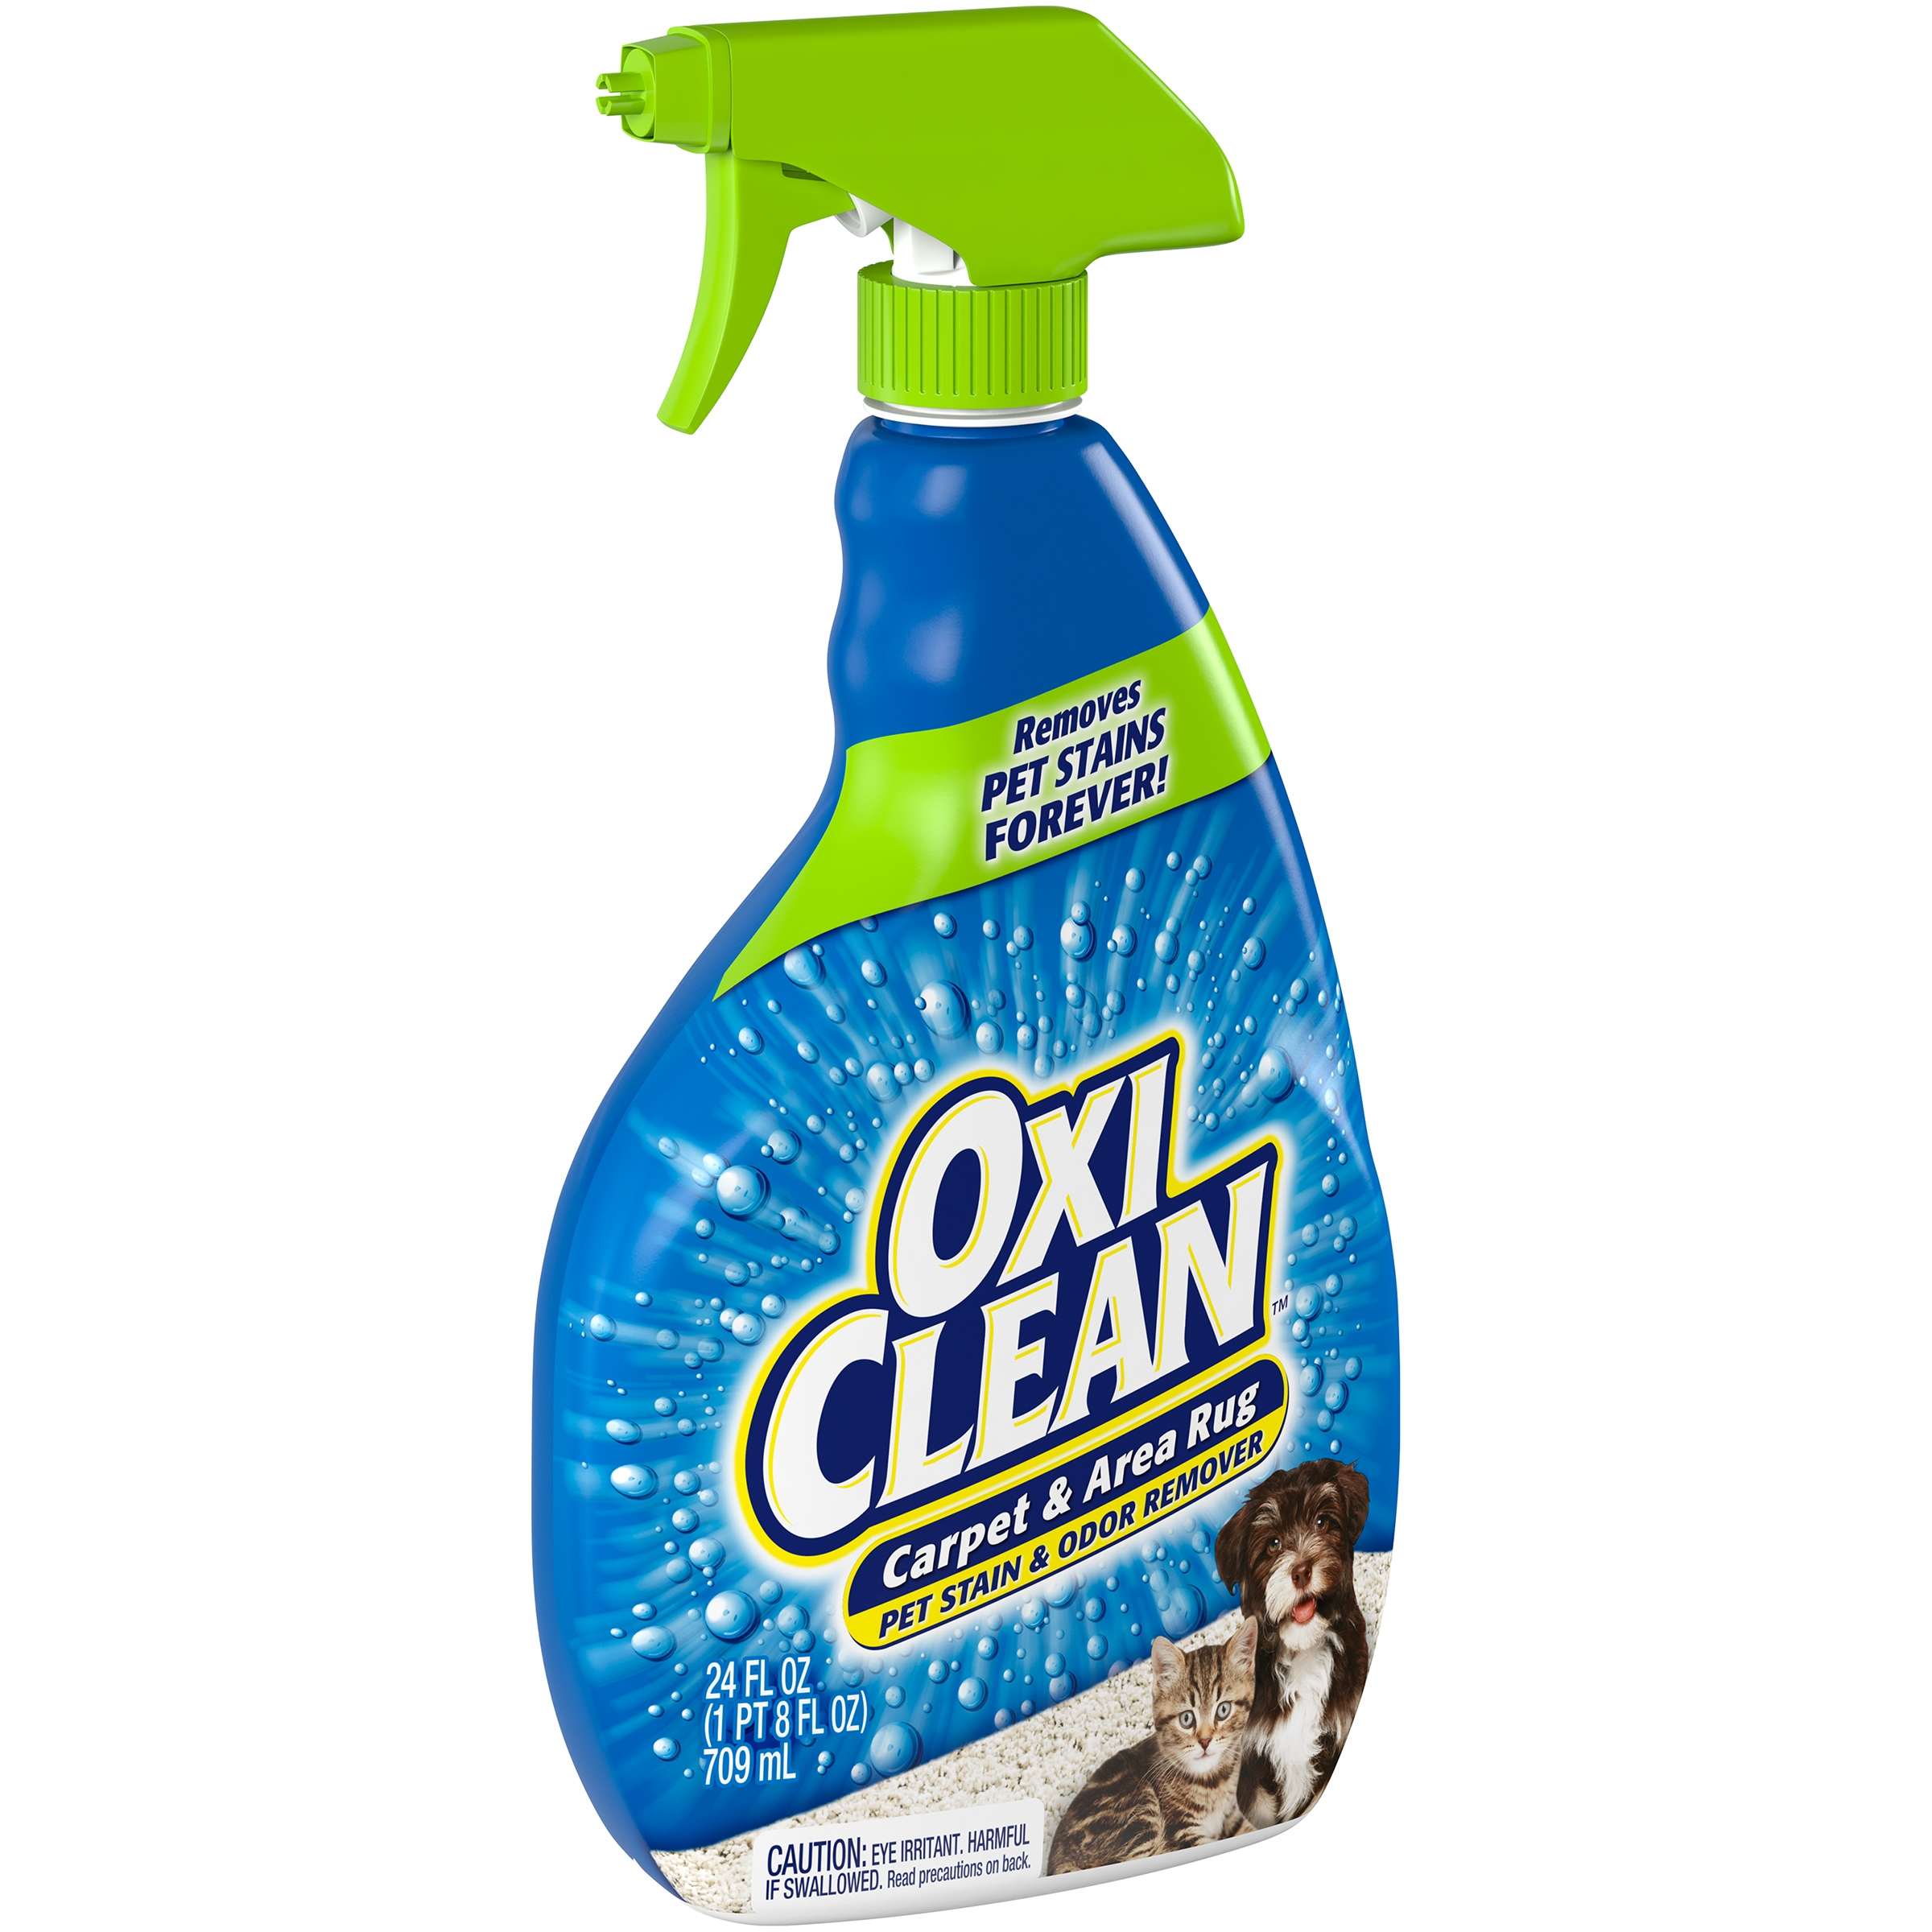 OxiClean Carpet & Area Rug Pet Stain & Odor Remover